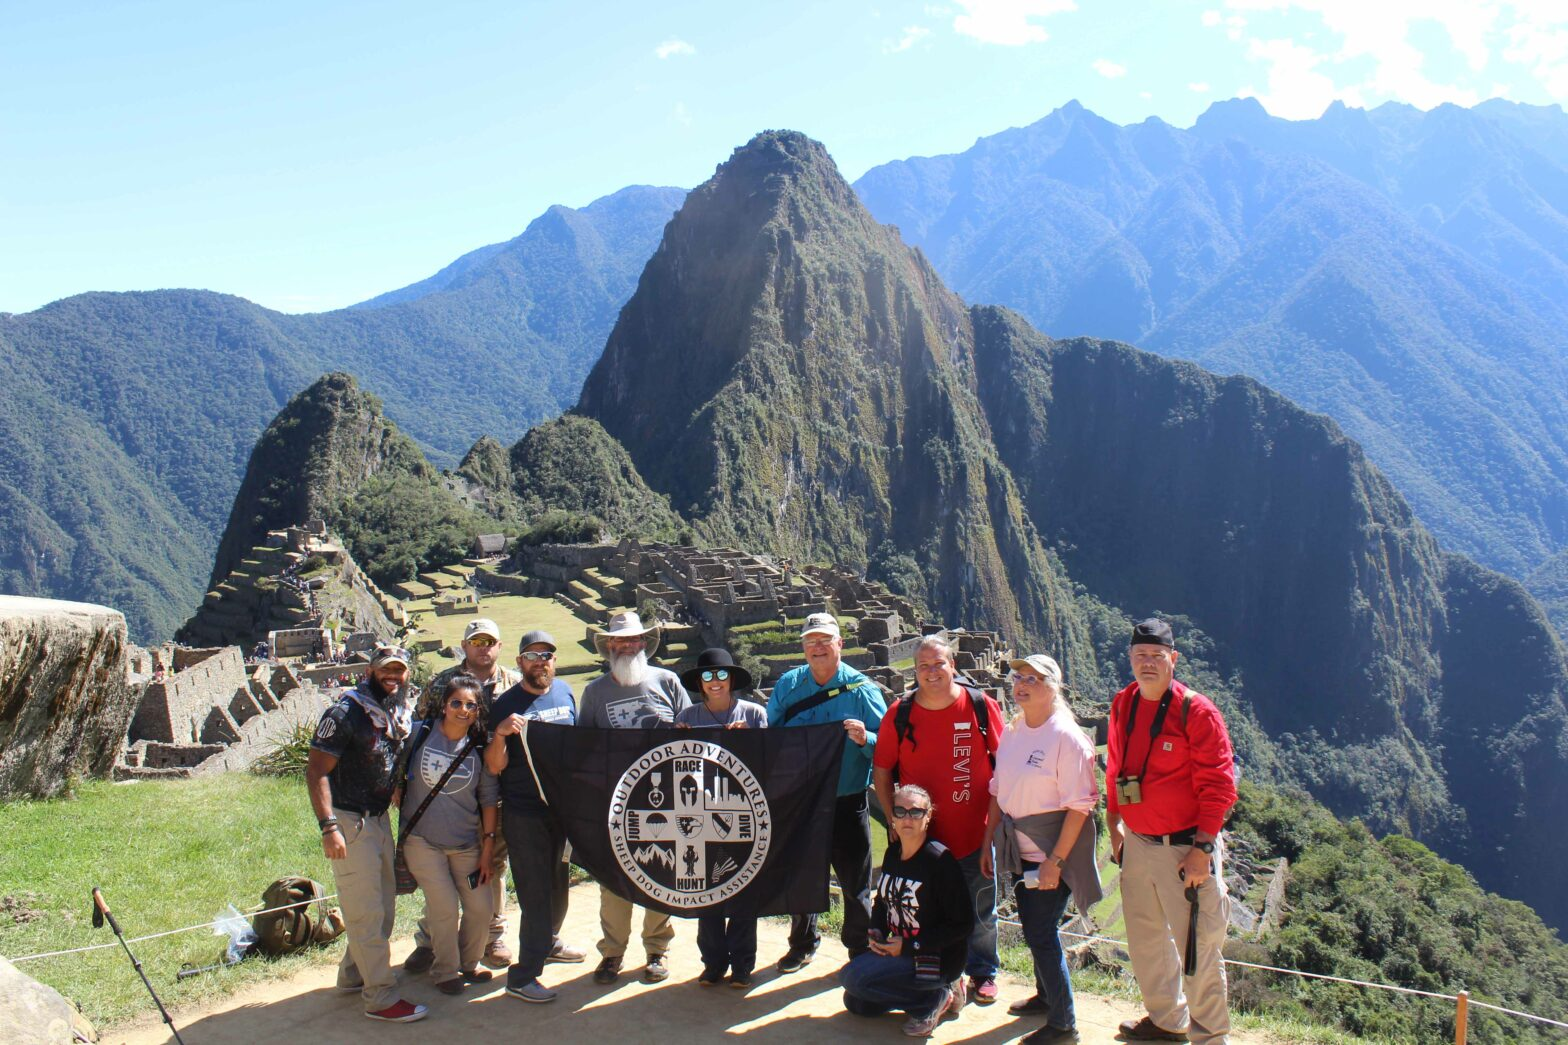 SDIA Outdoor Adventure to Machu Picchu this July!